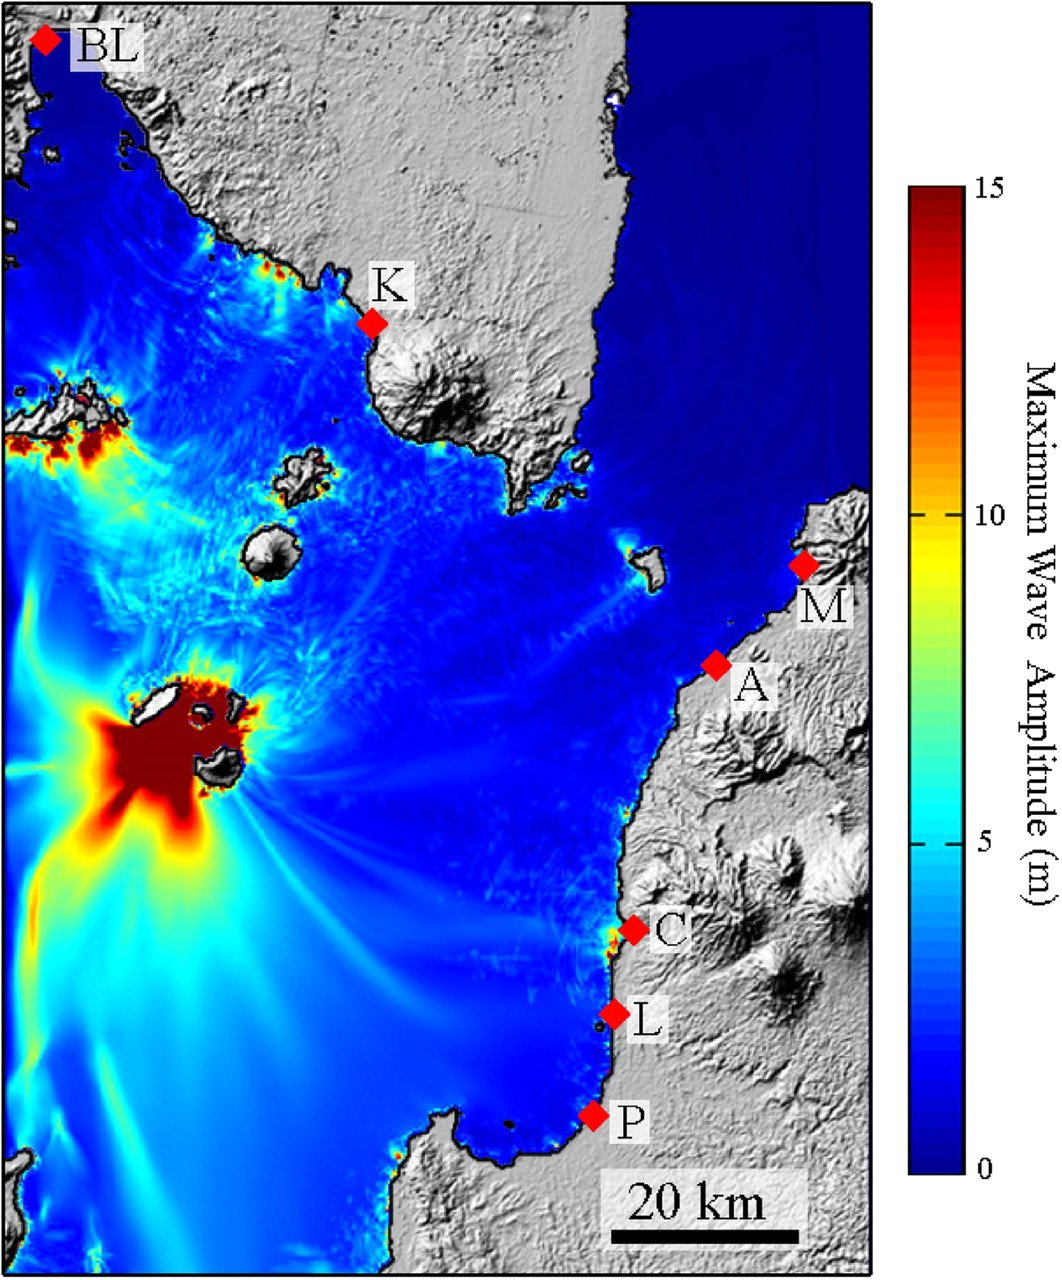 A simulation of an Anak Krakatau volcanic event shows waves of 15 meters or more locally (in red). (Giachetti et al. 2012)